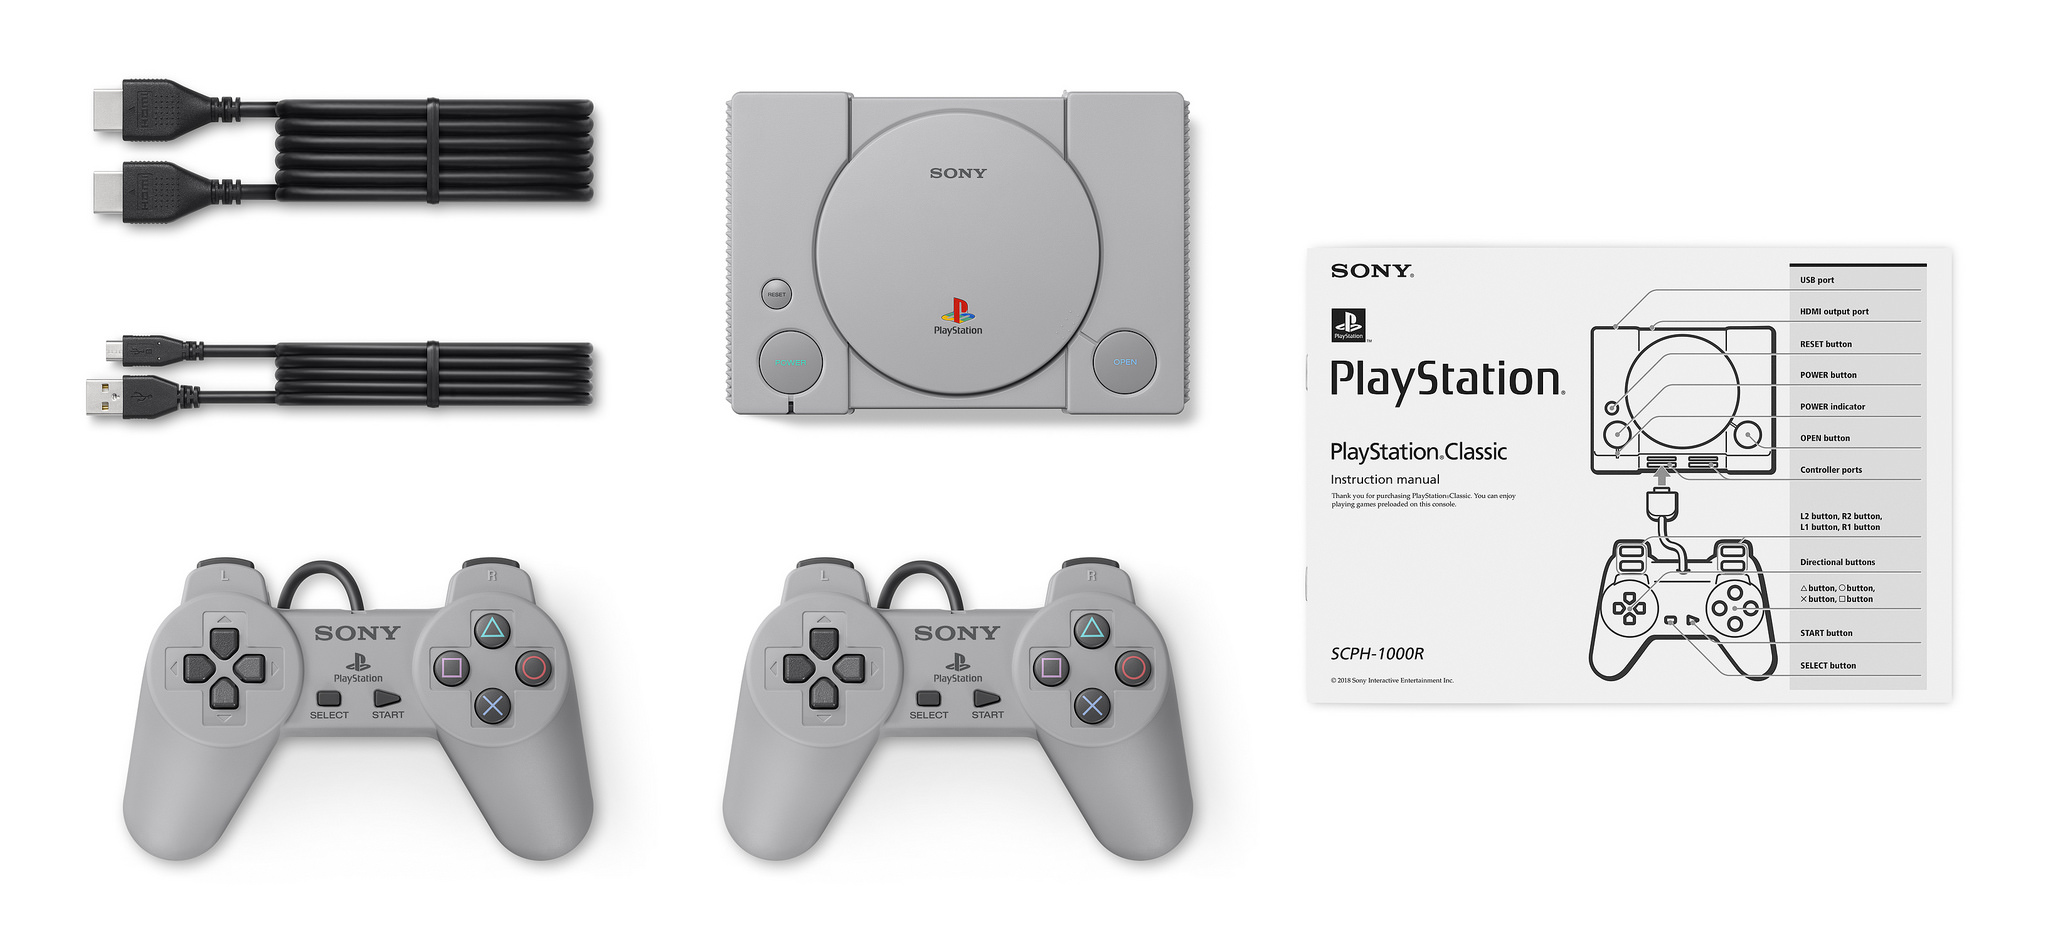 Sony Announces the PlayStation Classic Mini-Console | USgamer